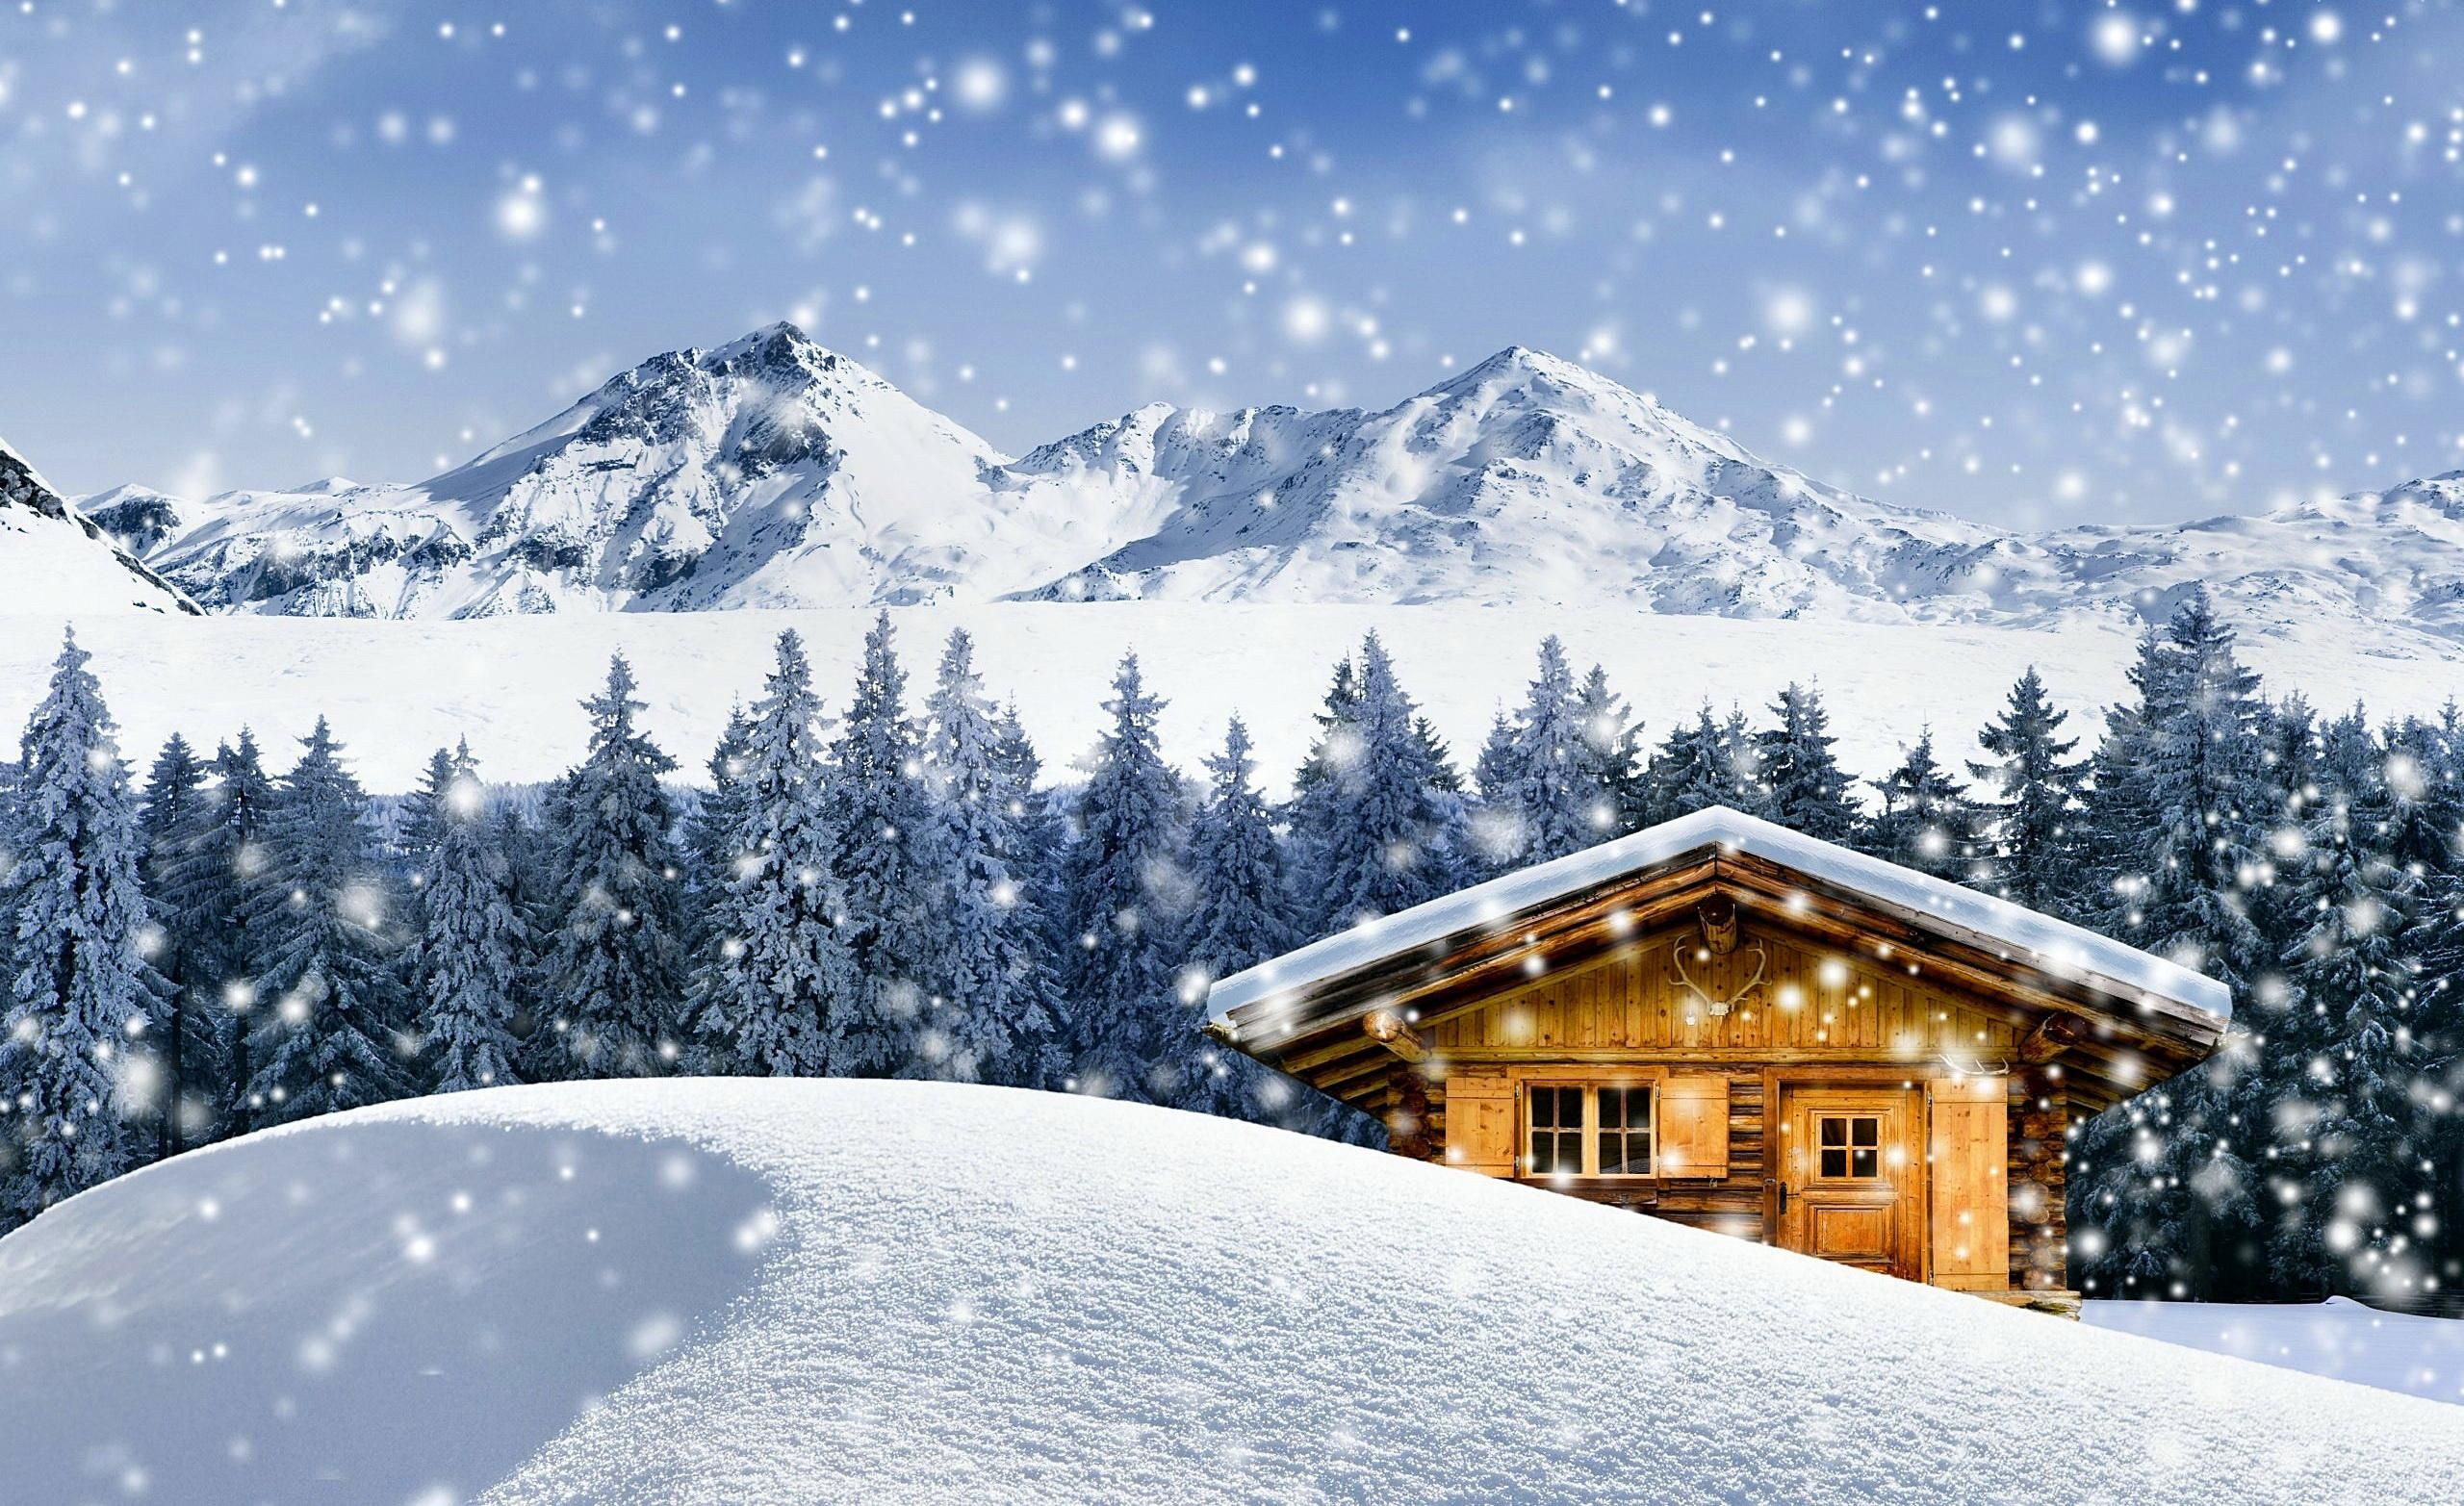 Winter cottage pictures hd dream winter cottage wallpaper winter winter cottage pictures hd dream winter cottage wallpaper voltagebd Images